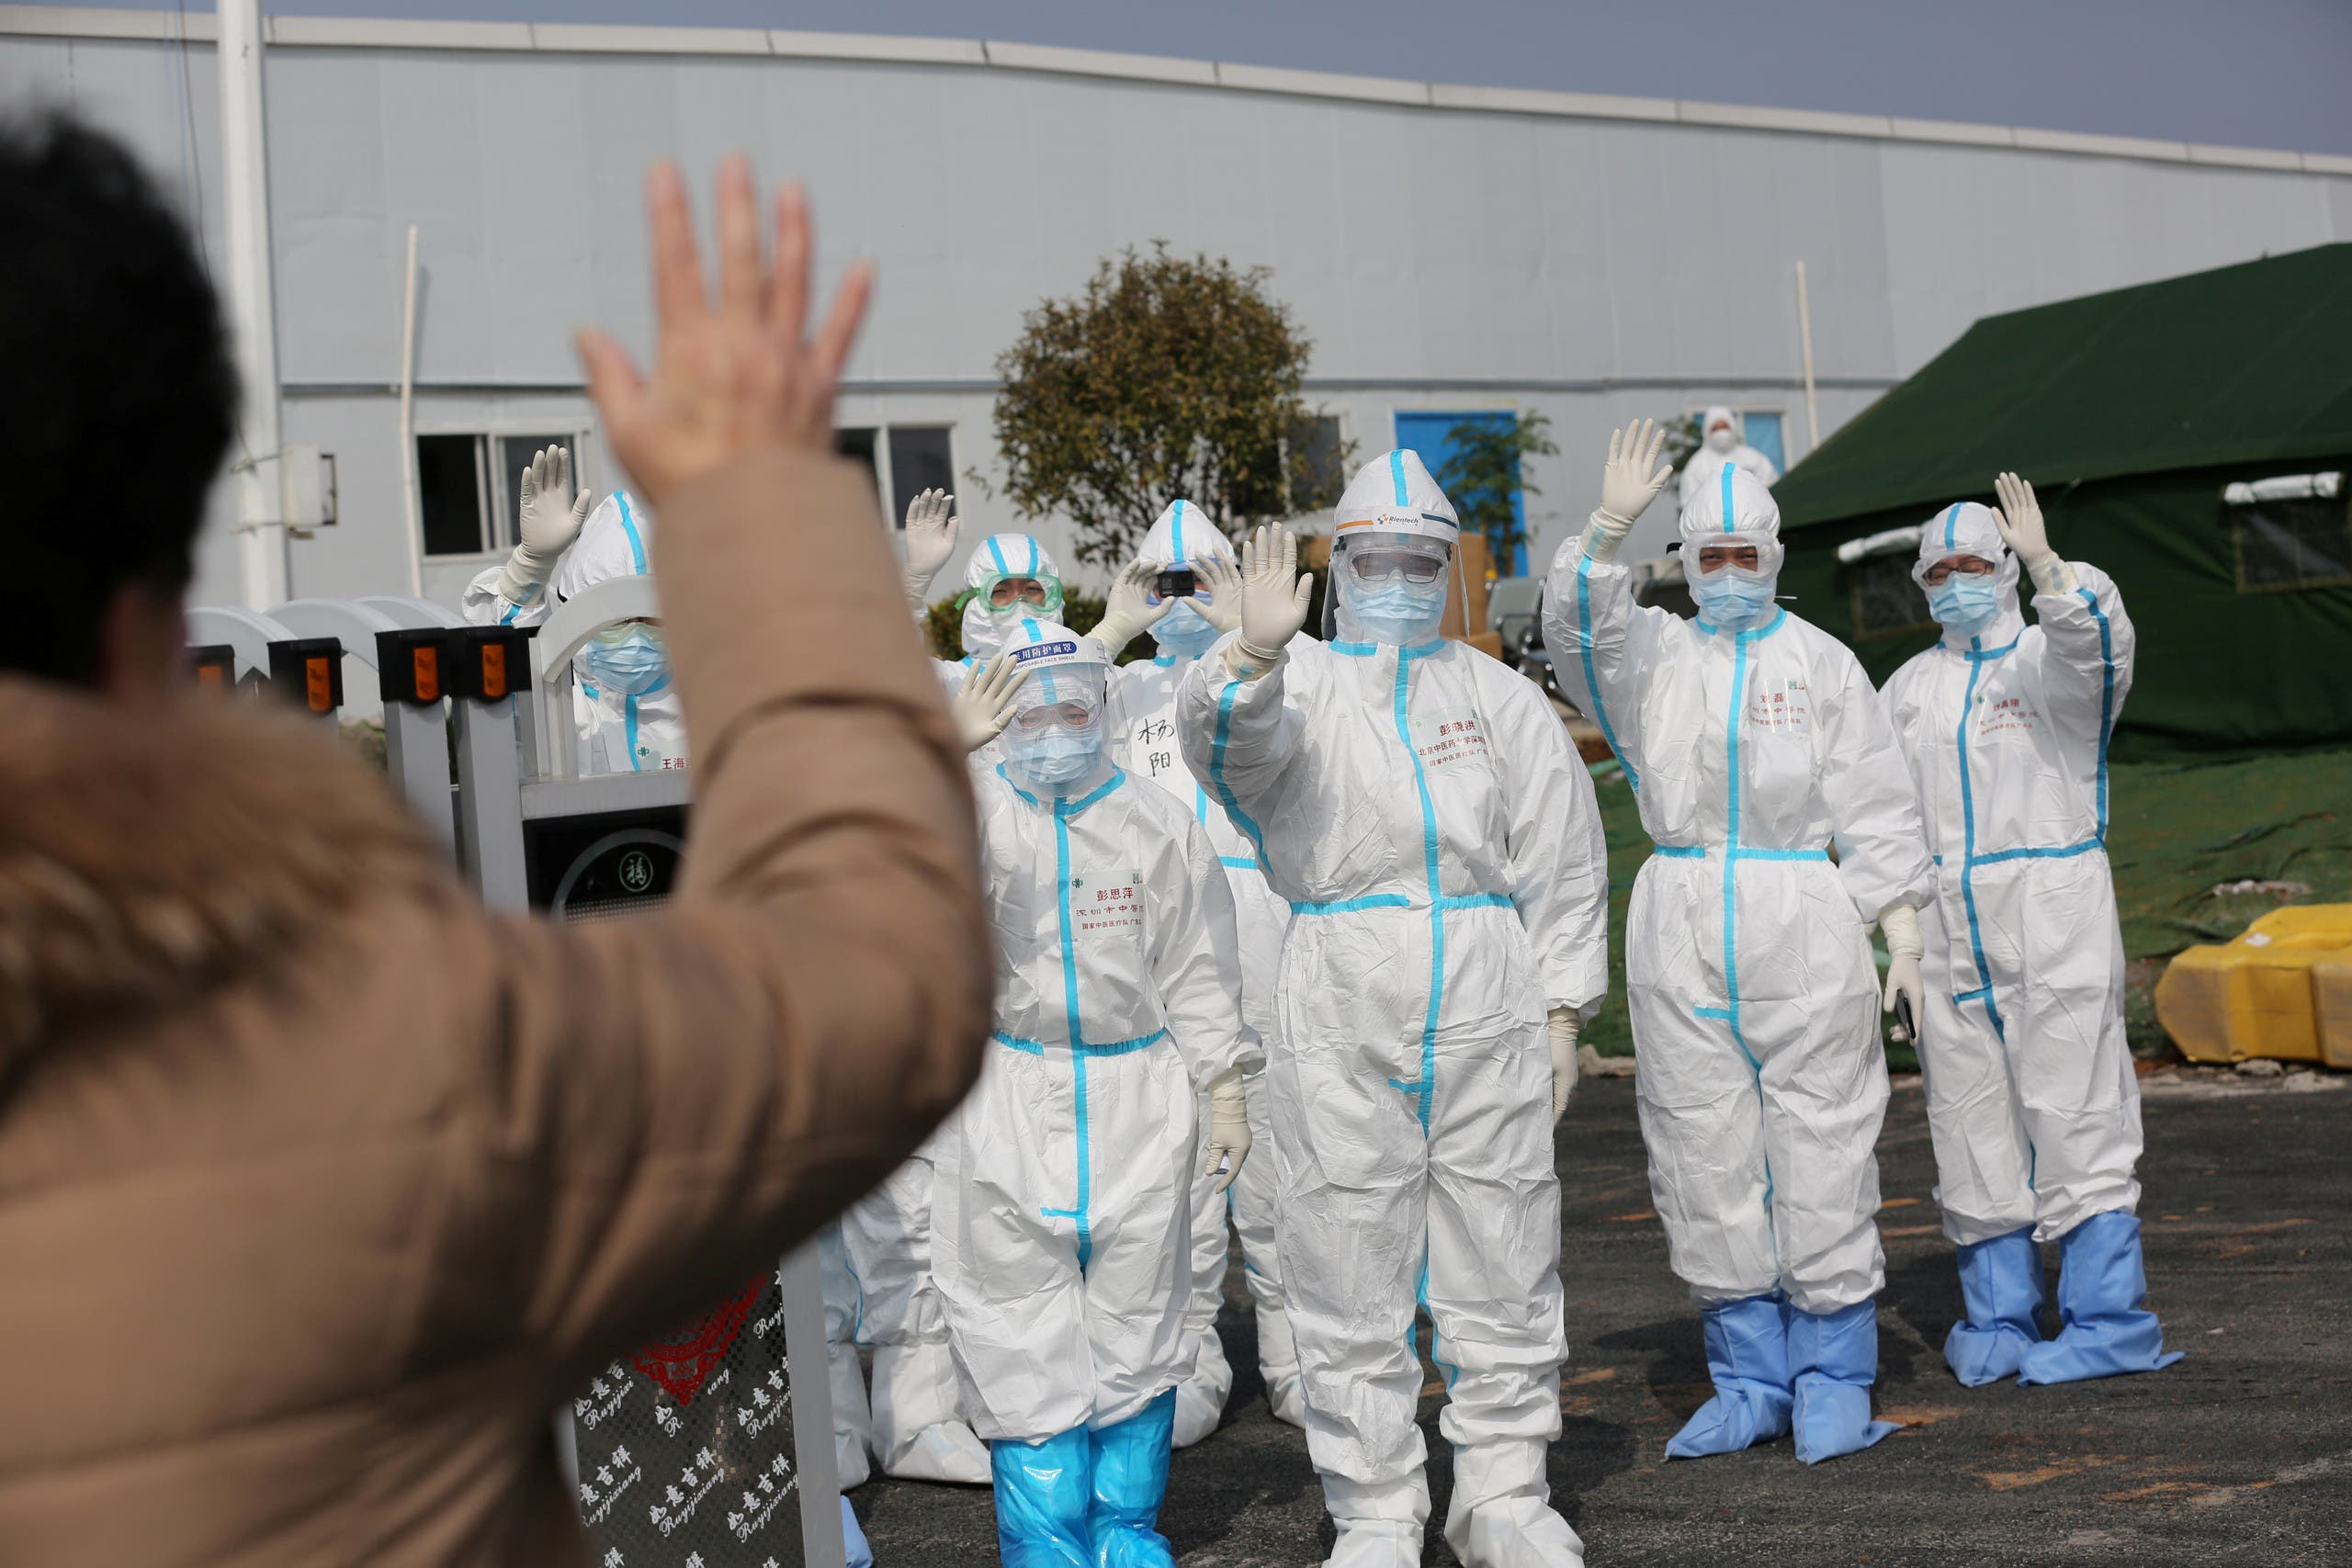 Medical personnel in protective suits wave hands to a patient who is discharged from the Leishenshan Hospital after recovering from the novel coronavirus, in Wuhan, the epicentre of the novel coronavirus outbreak, in Hubei province, China. (File photo: Reuters)